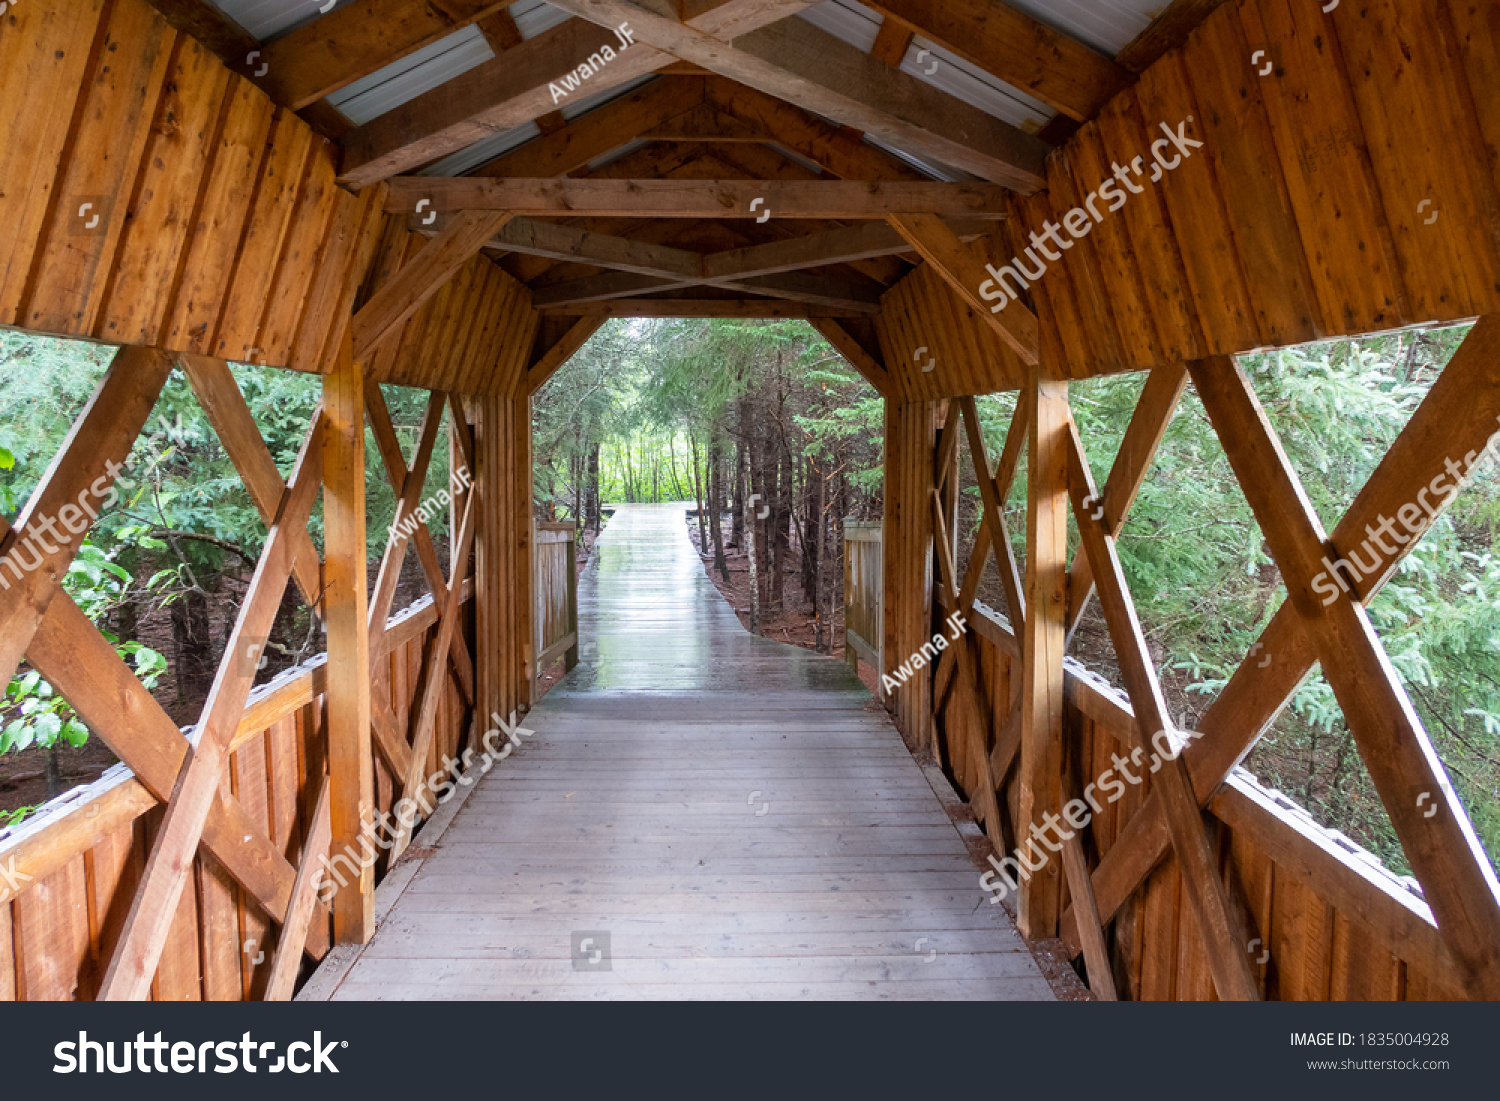 stock-photo-view-of-a-wooden-tunnel-insi